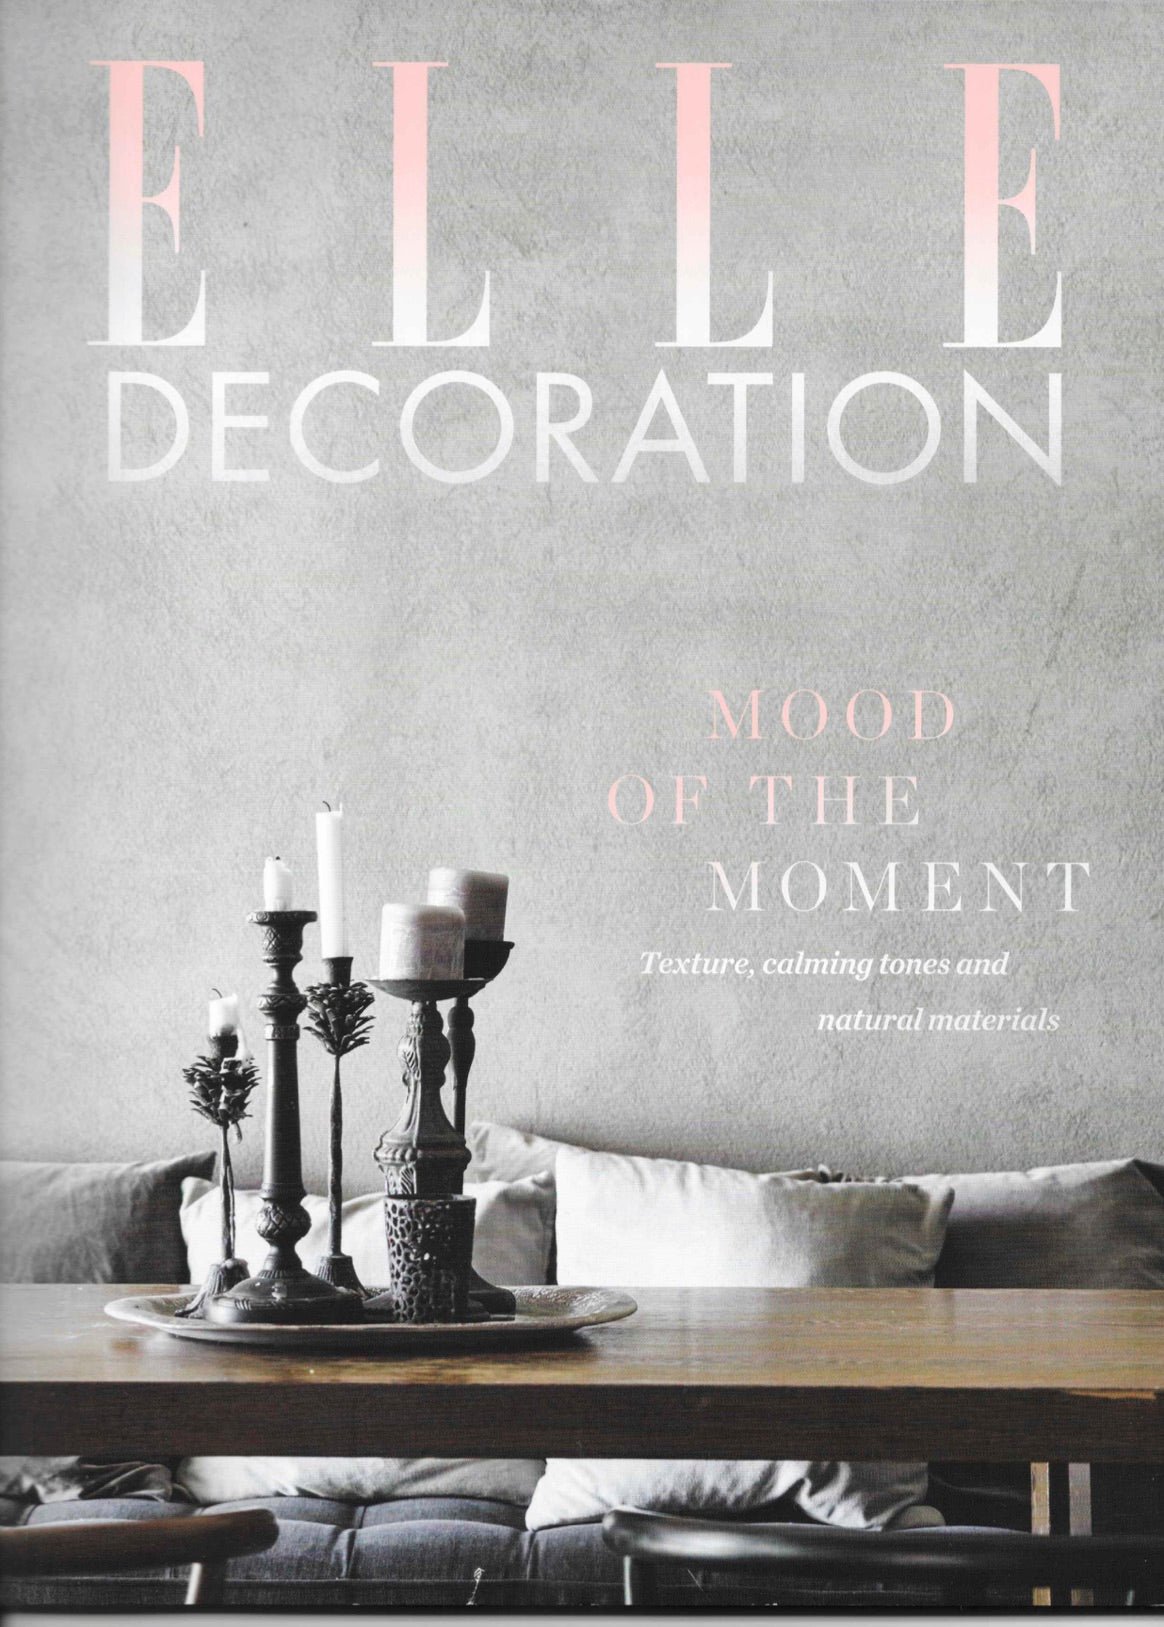 Elle Decoration and Tori Murphy